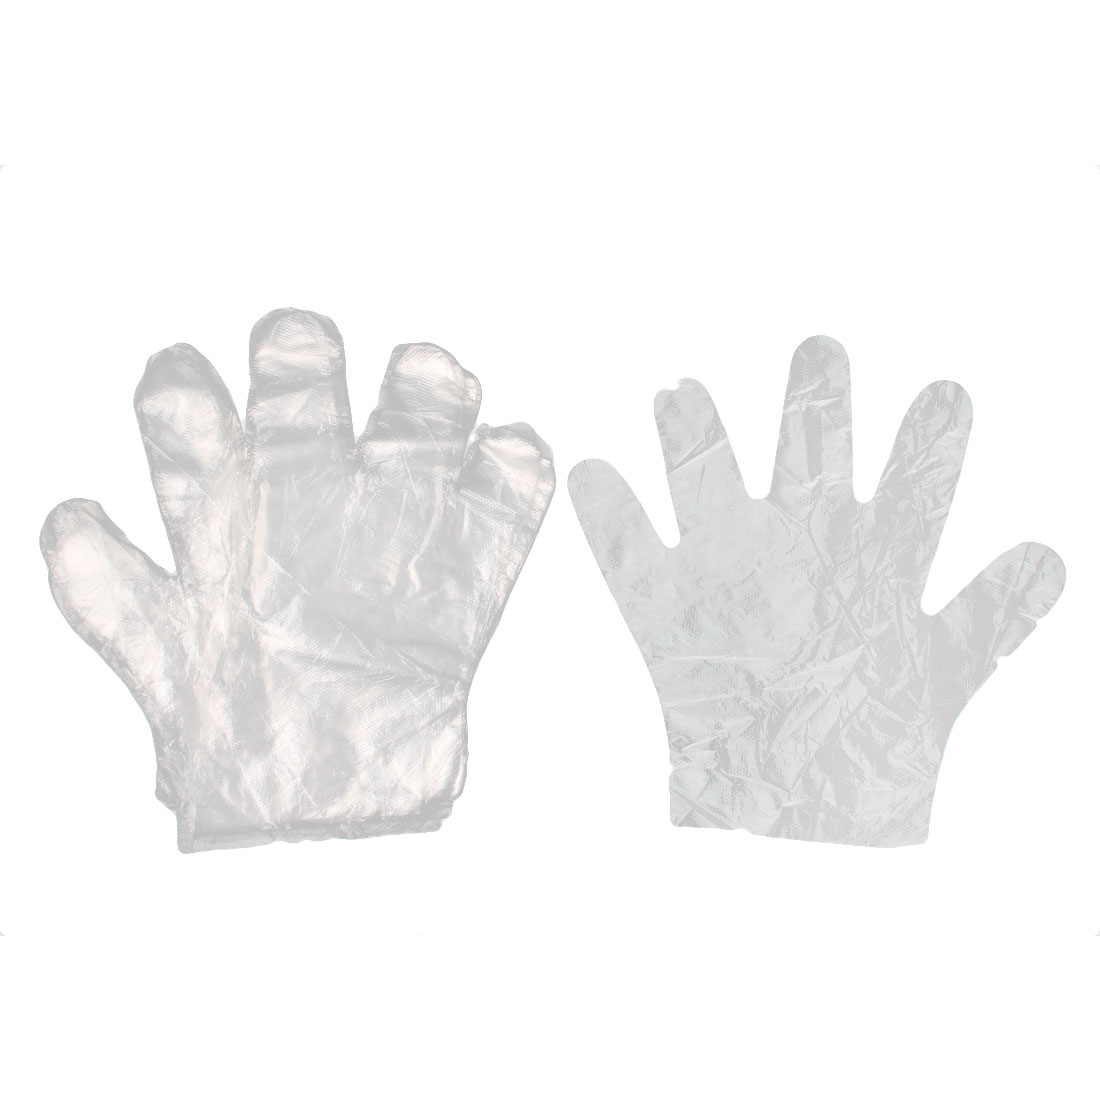 25 Pairs Clear Plastic Restaurant Food Service Hand Protective Disposable Gloves